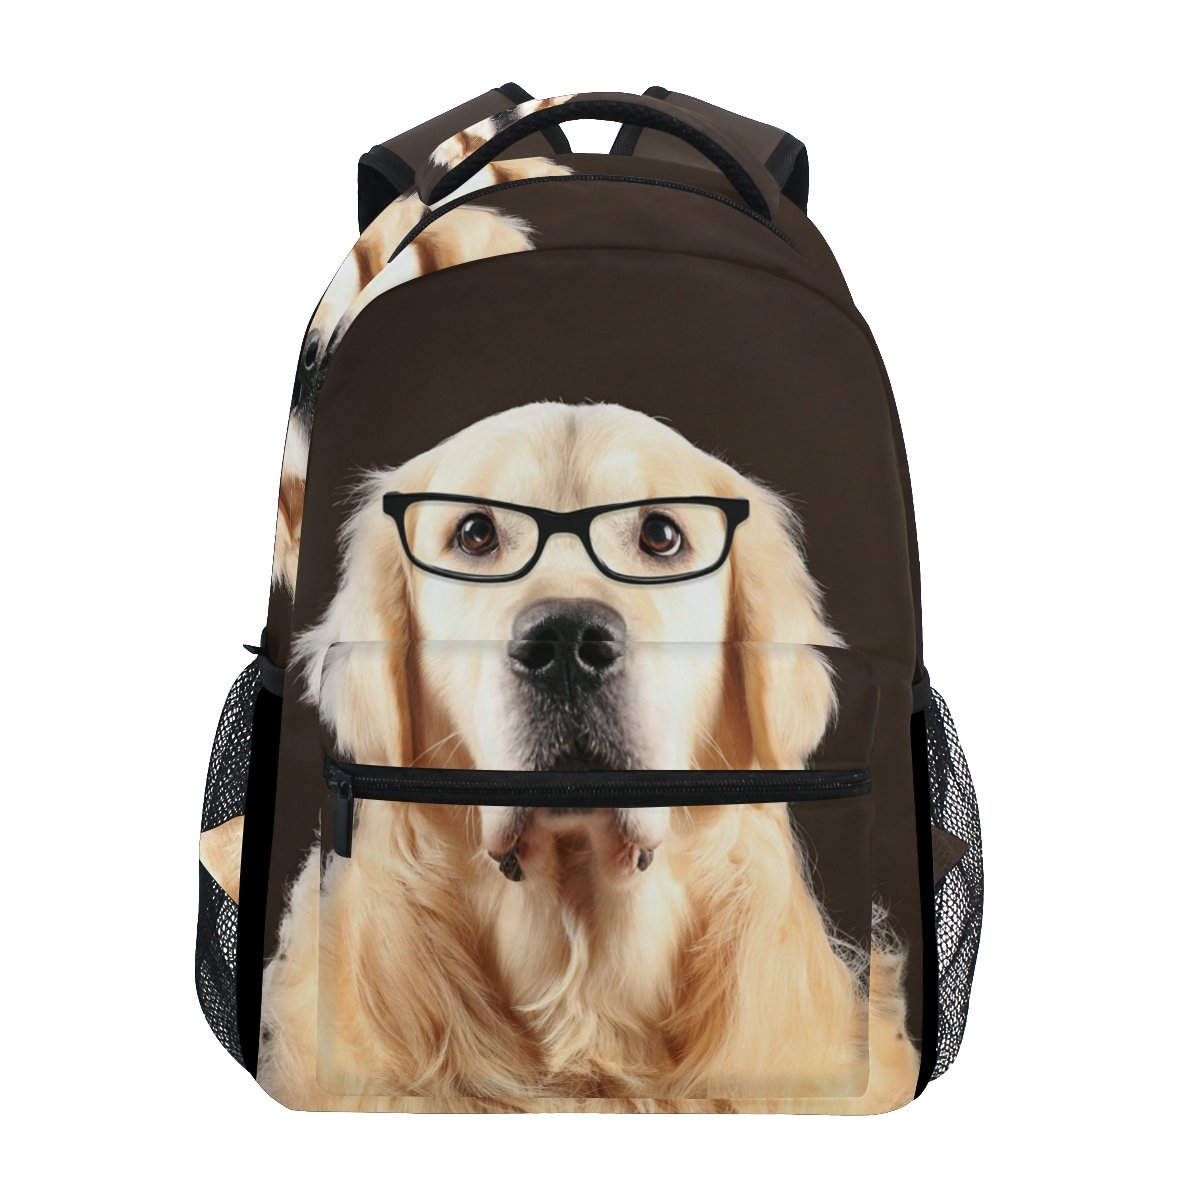 Golden Retriever Dog In Glasses School Backpack for Boys Girls Bookbag Travel Bag